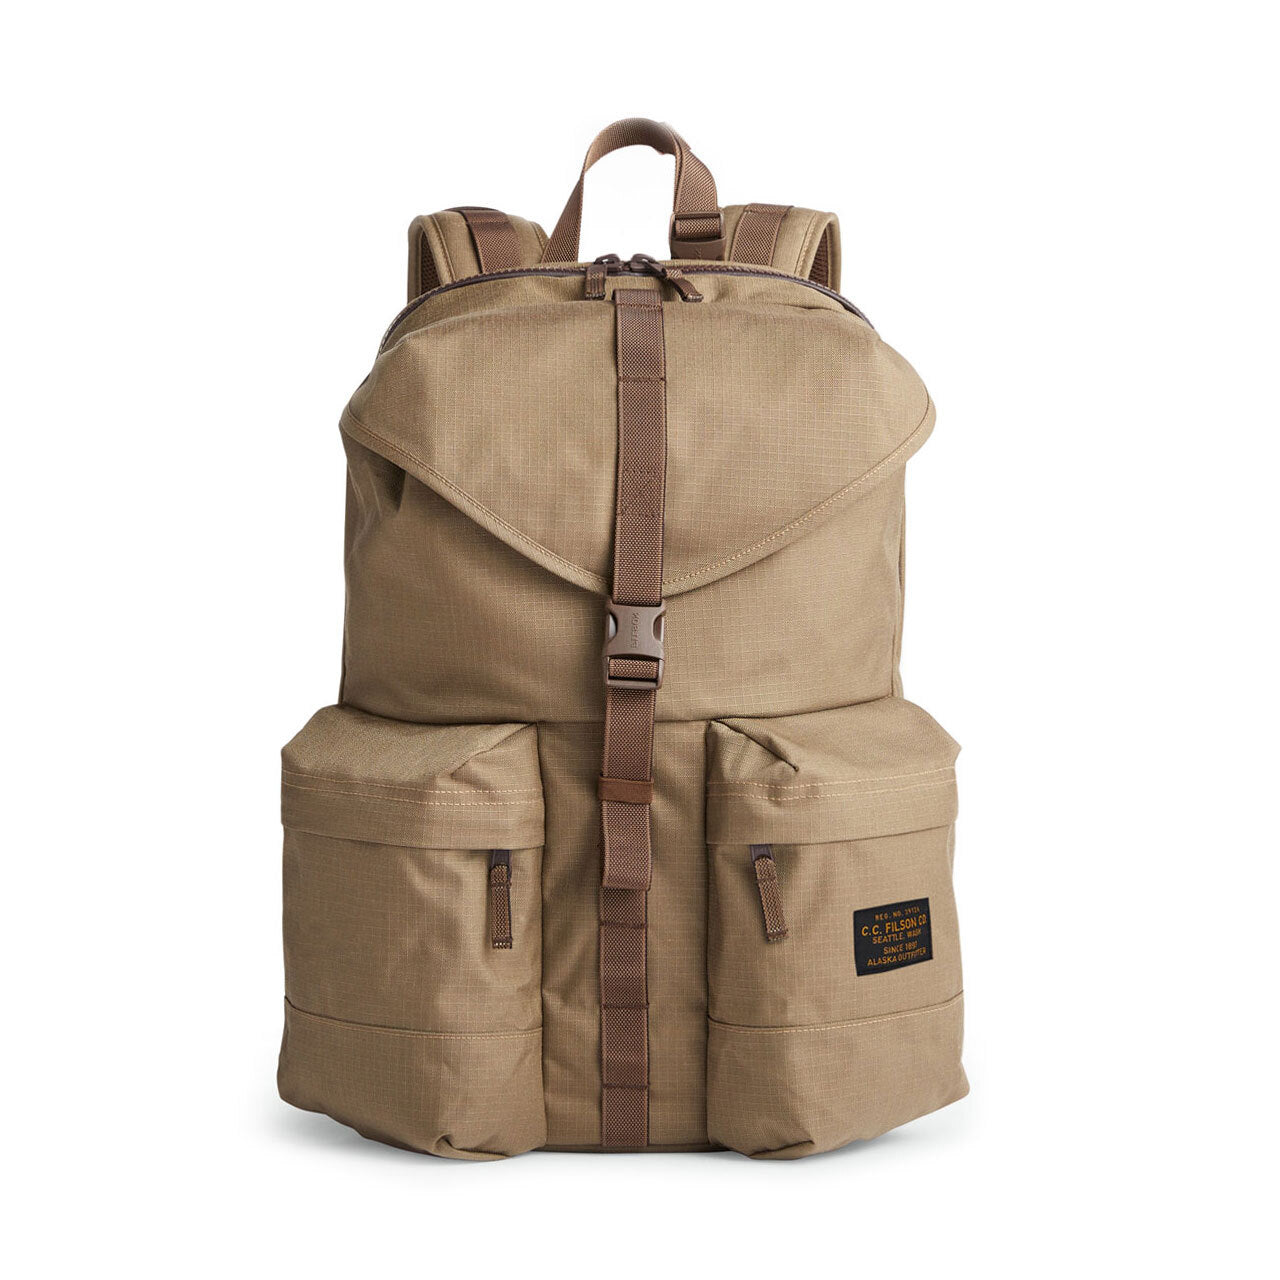 Filson Ripstop Nylon Backpack